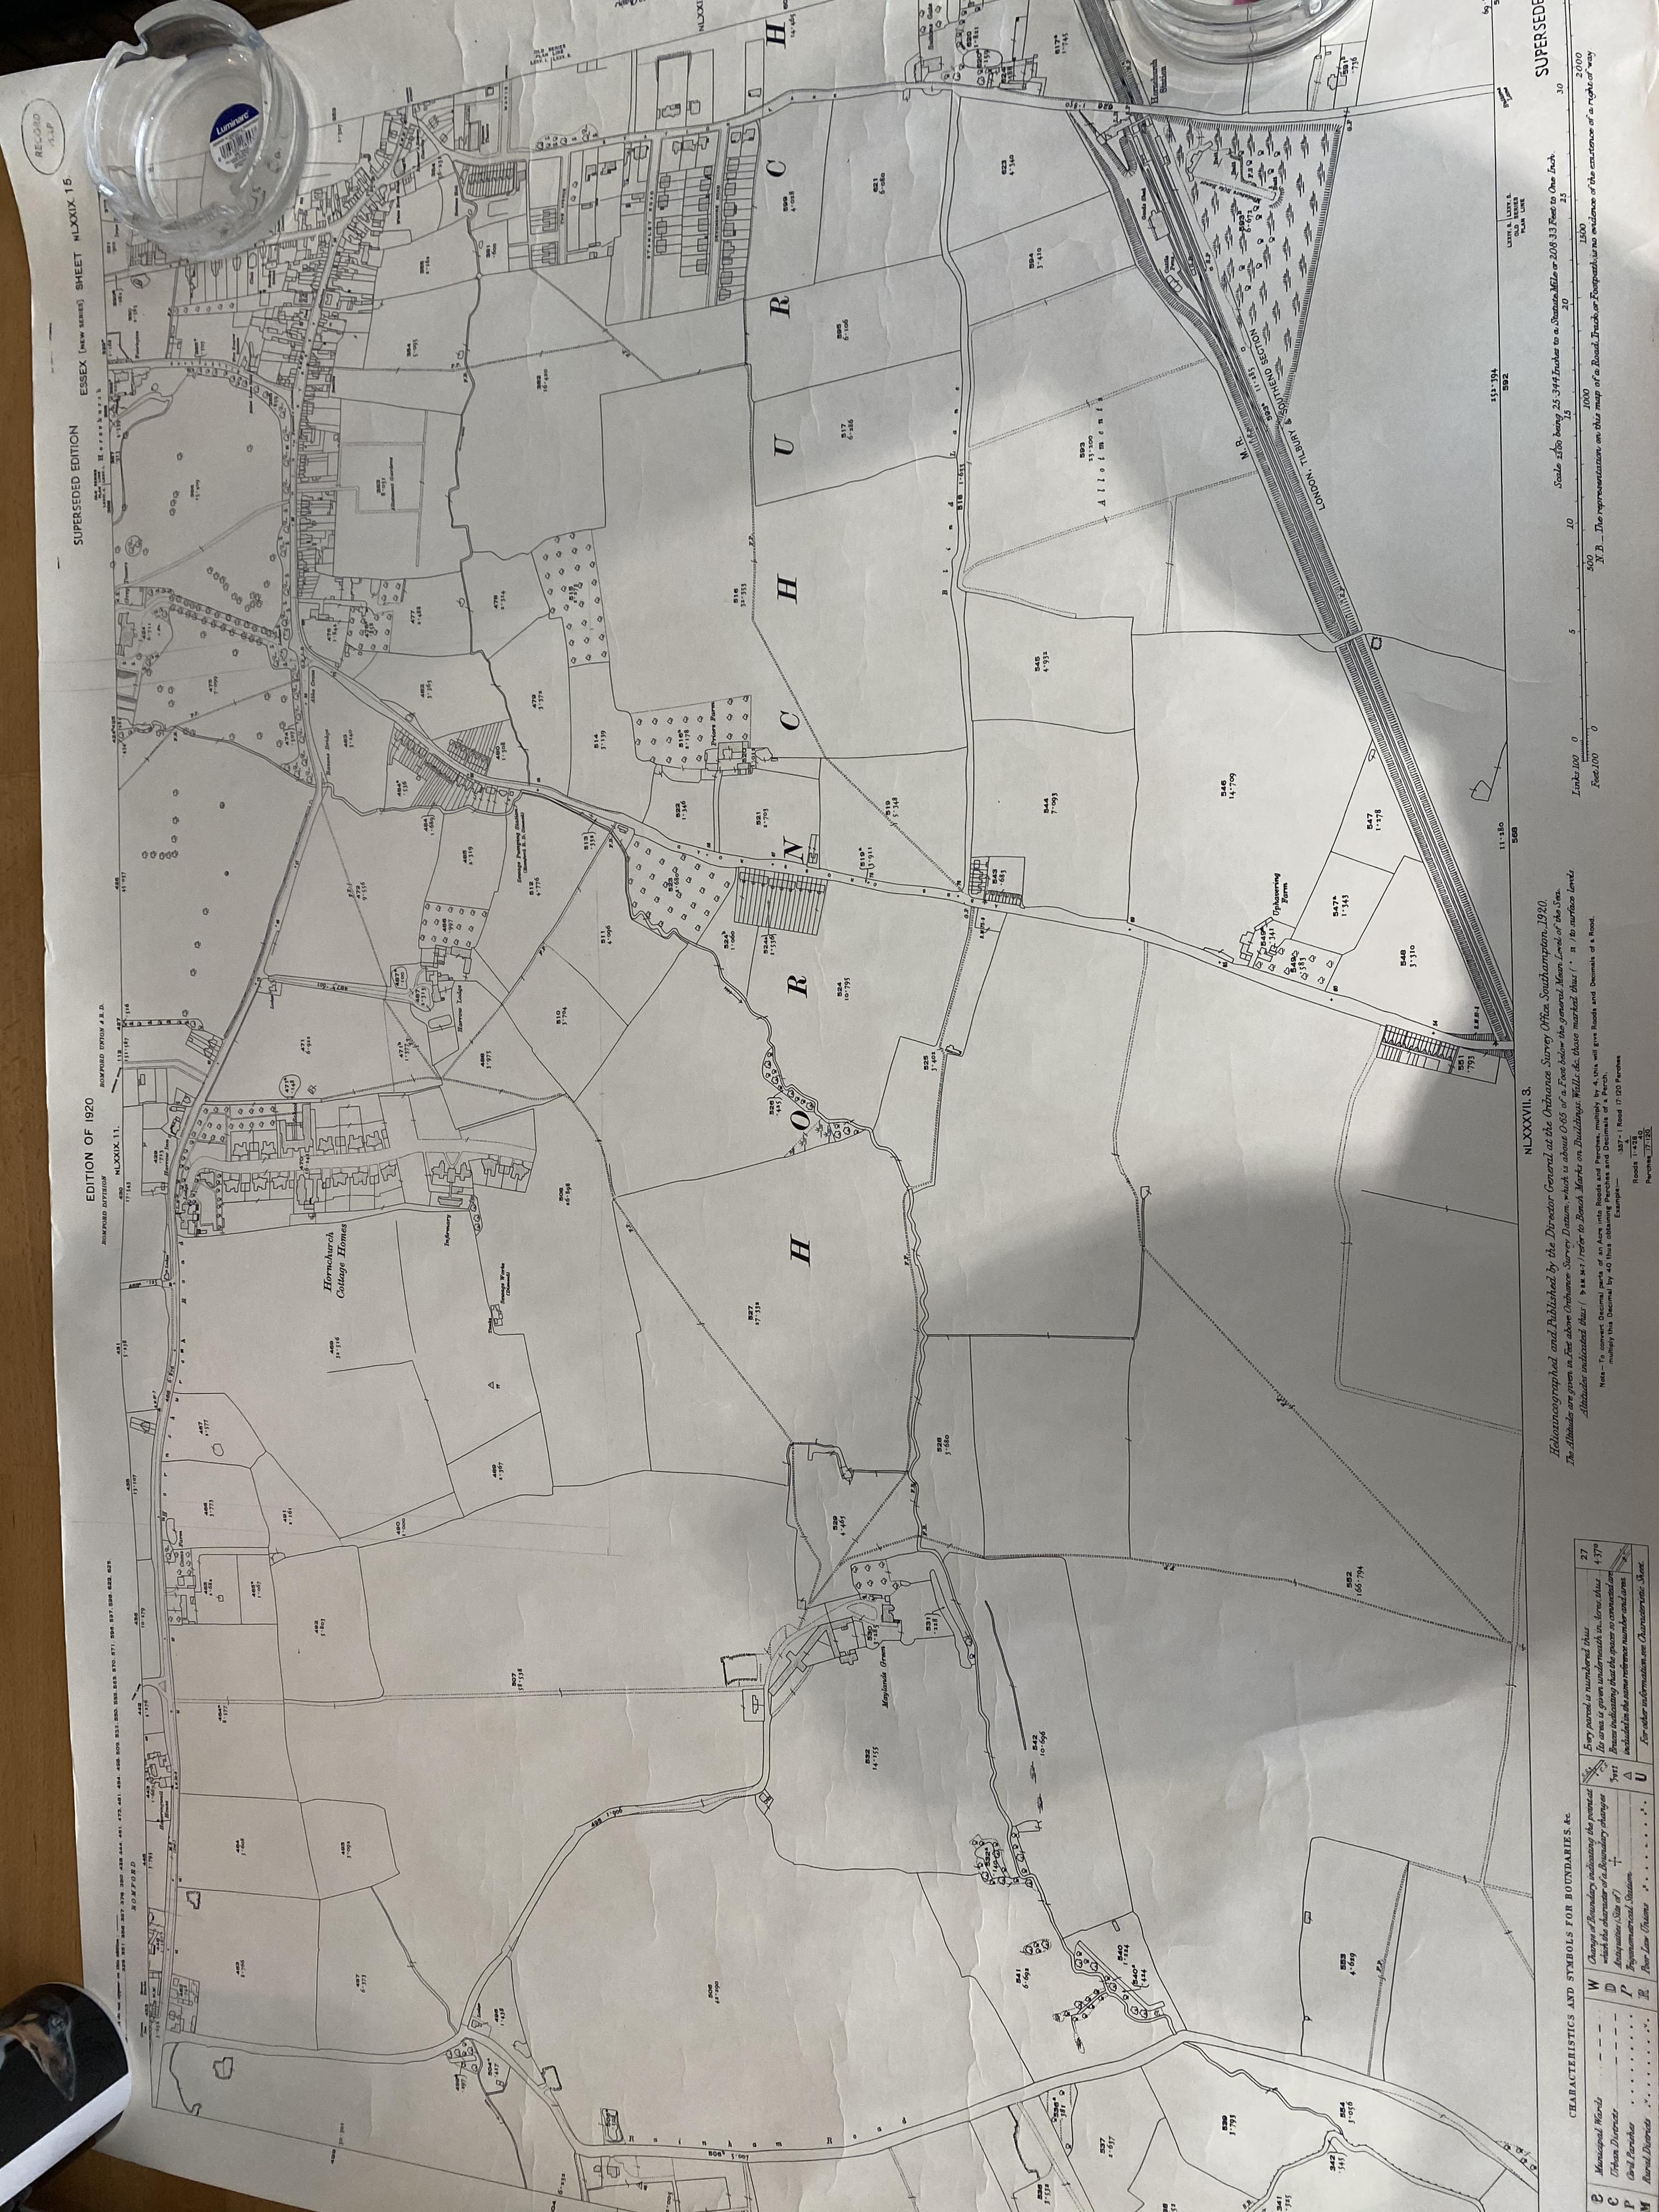 Superseeded Edition, Edition 1920 Essex, Hornchurch ordnance map